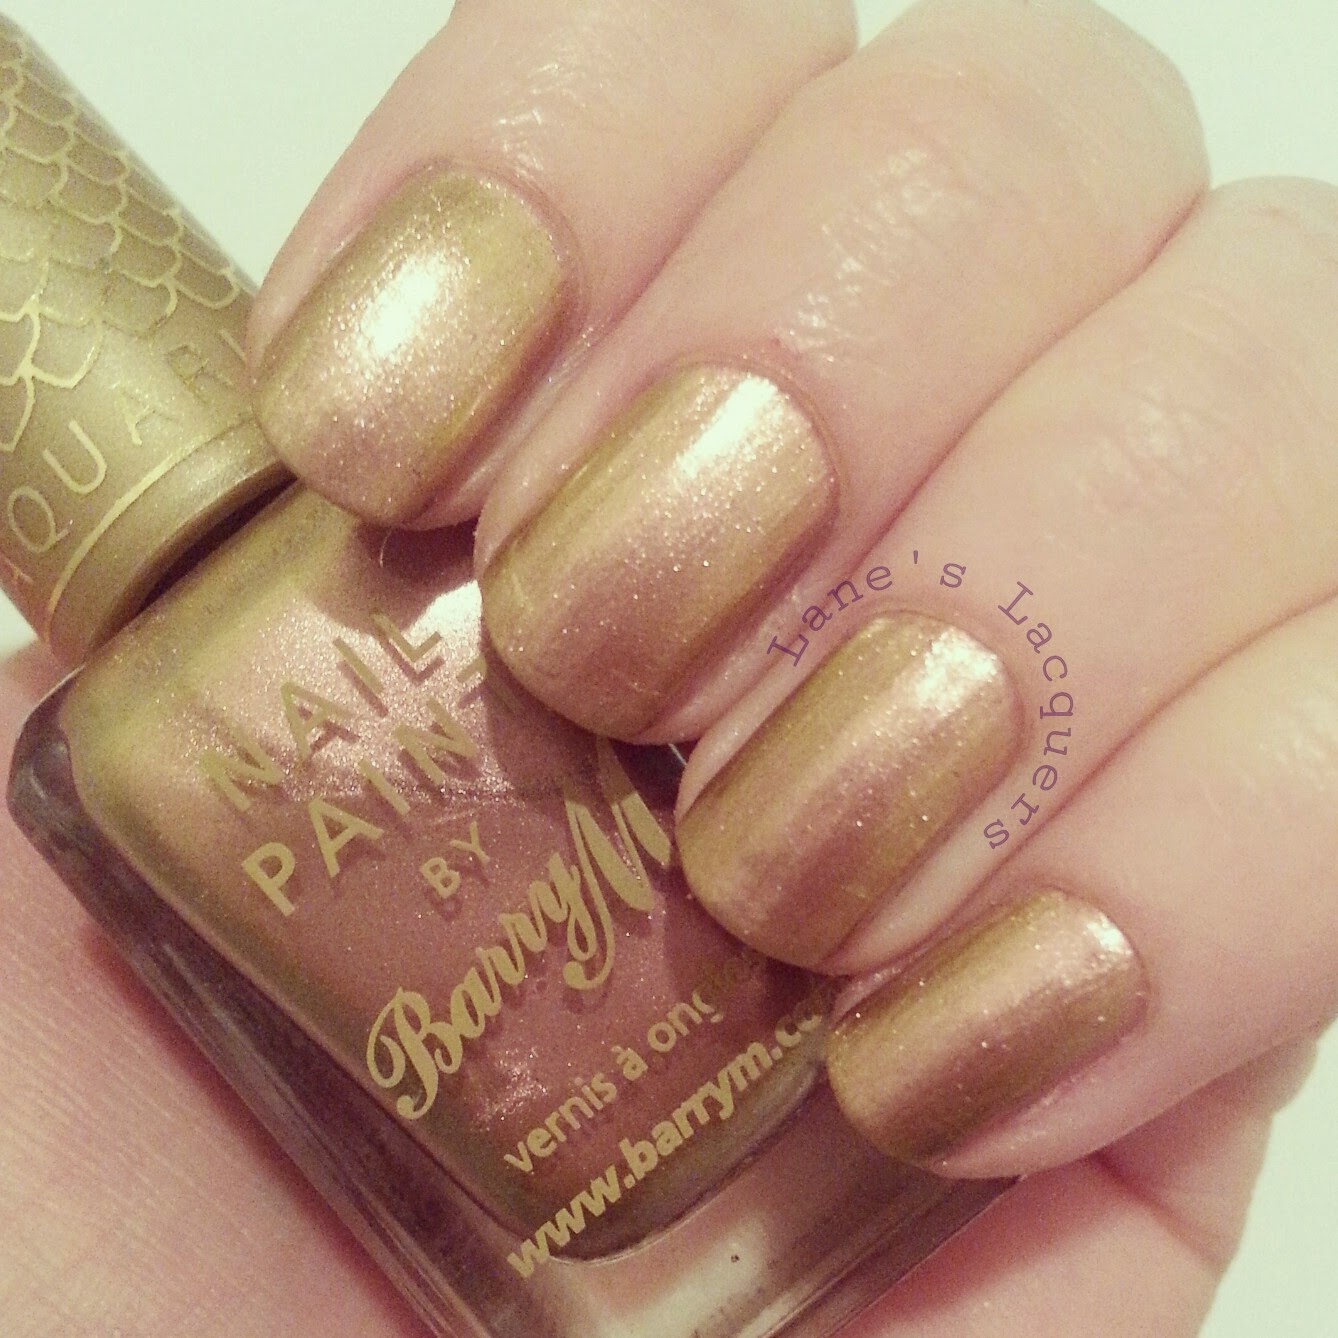 barry-m-aquarium-gold-aqnp3-swatch-nails